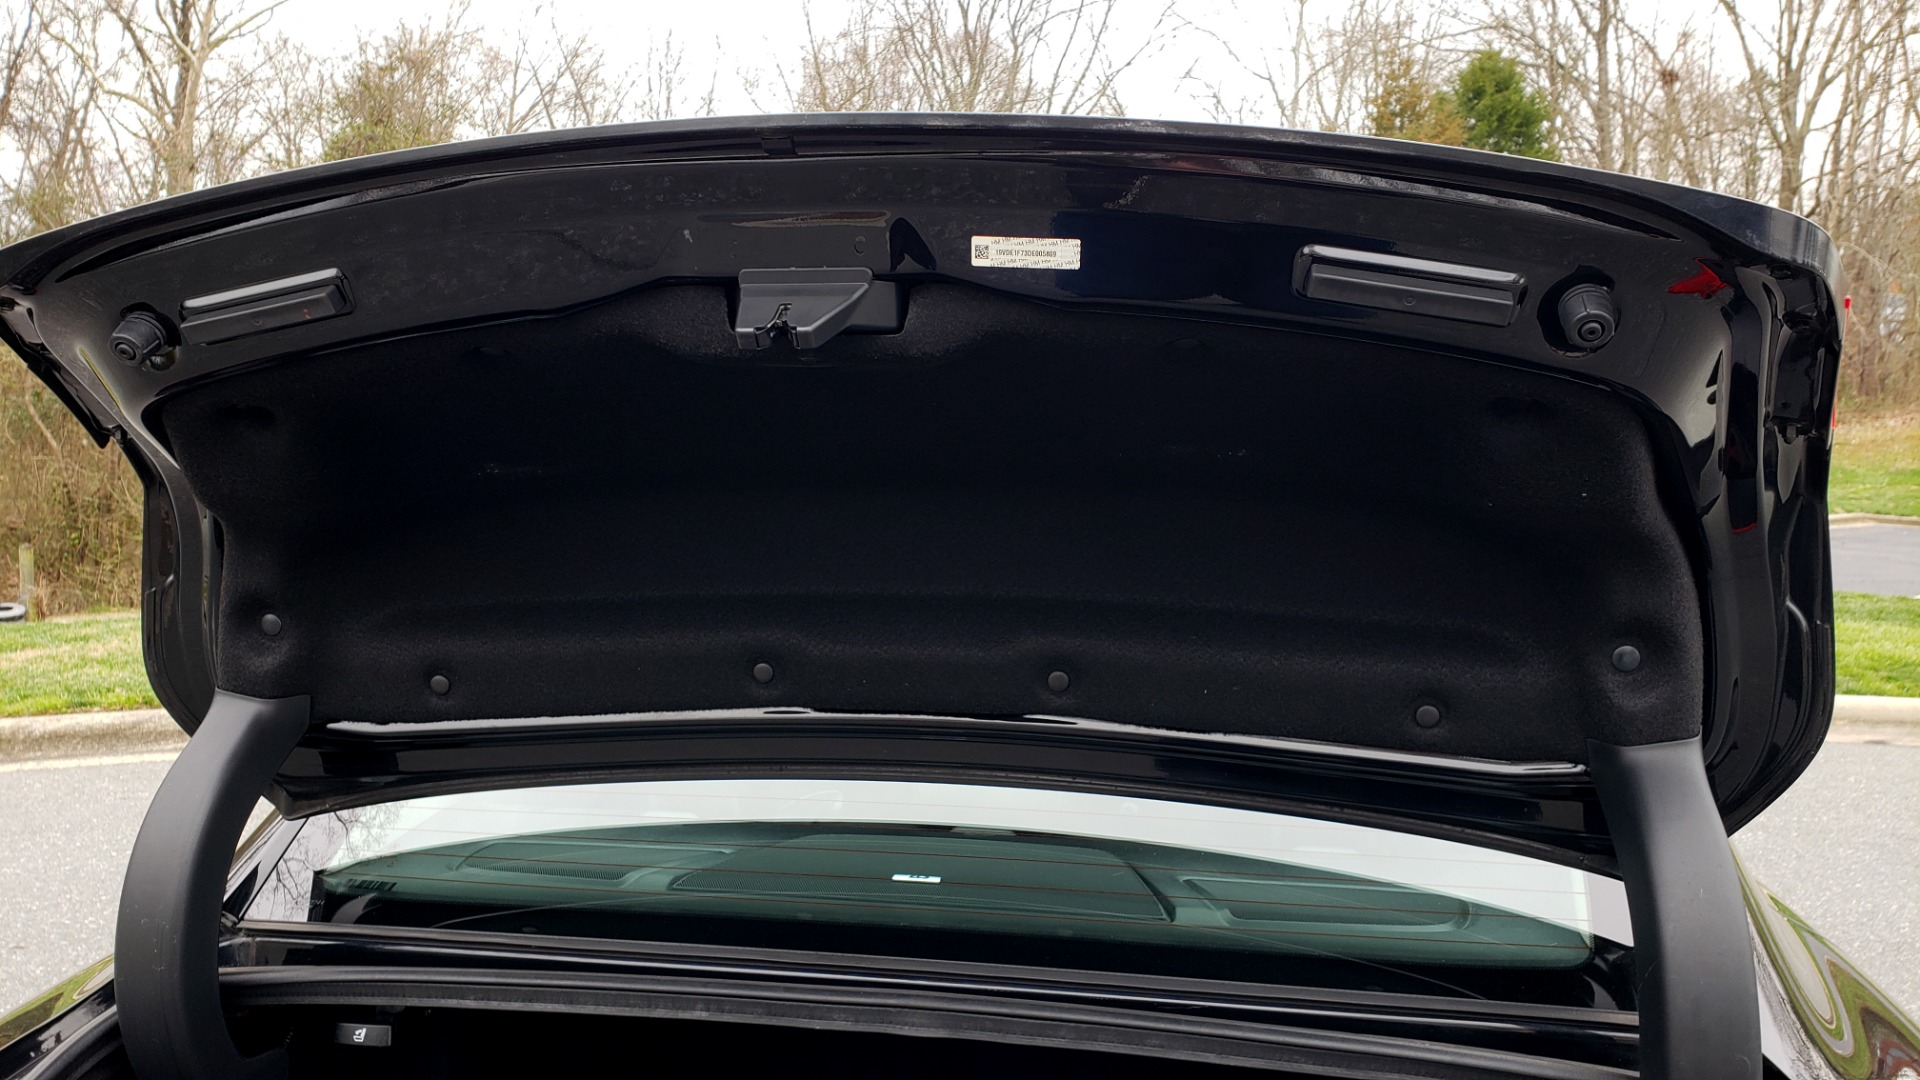 Used 2013 Acura ILX TECH PKG / SUNROOF / NAV / DUAL-ZONE A/C / REARVIEW for sale Sold at Formula Imports in Charlotte NC 28227 18